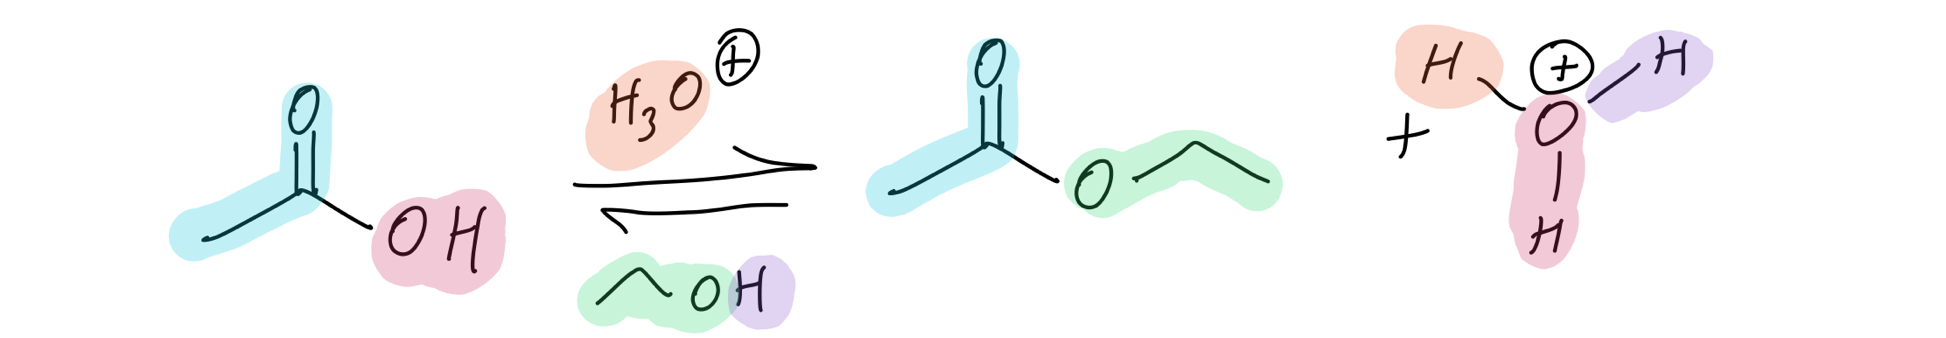 Starting-material-reagents-and-product